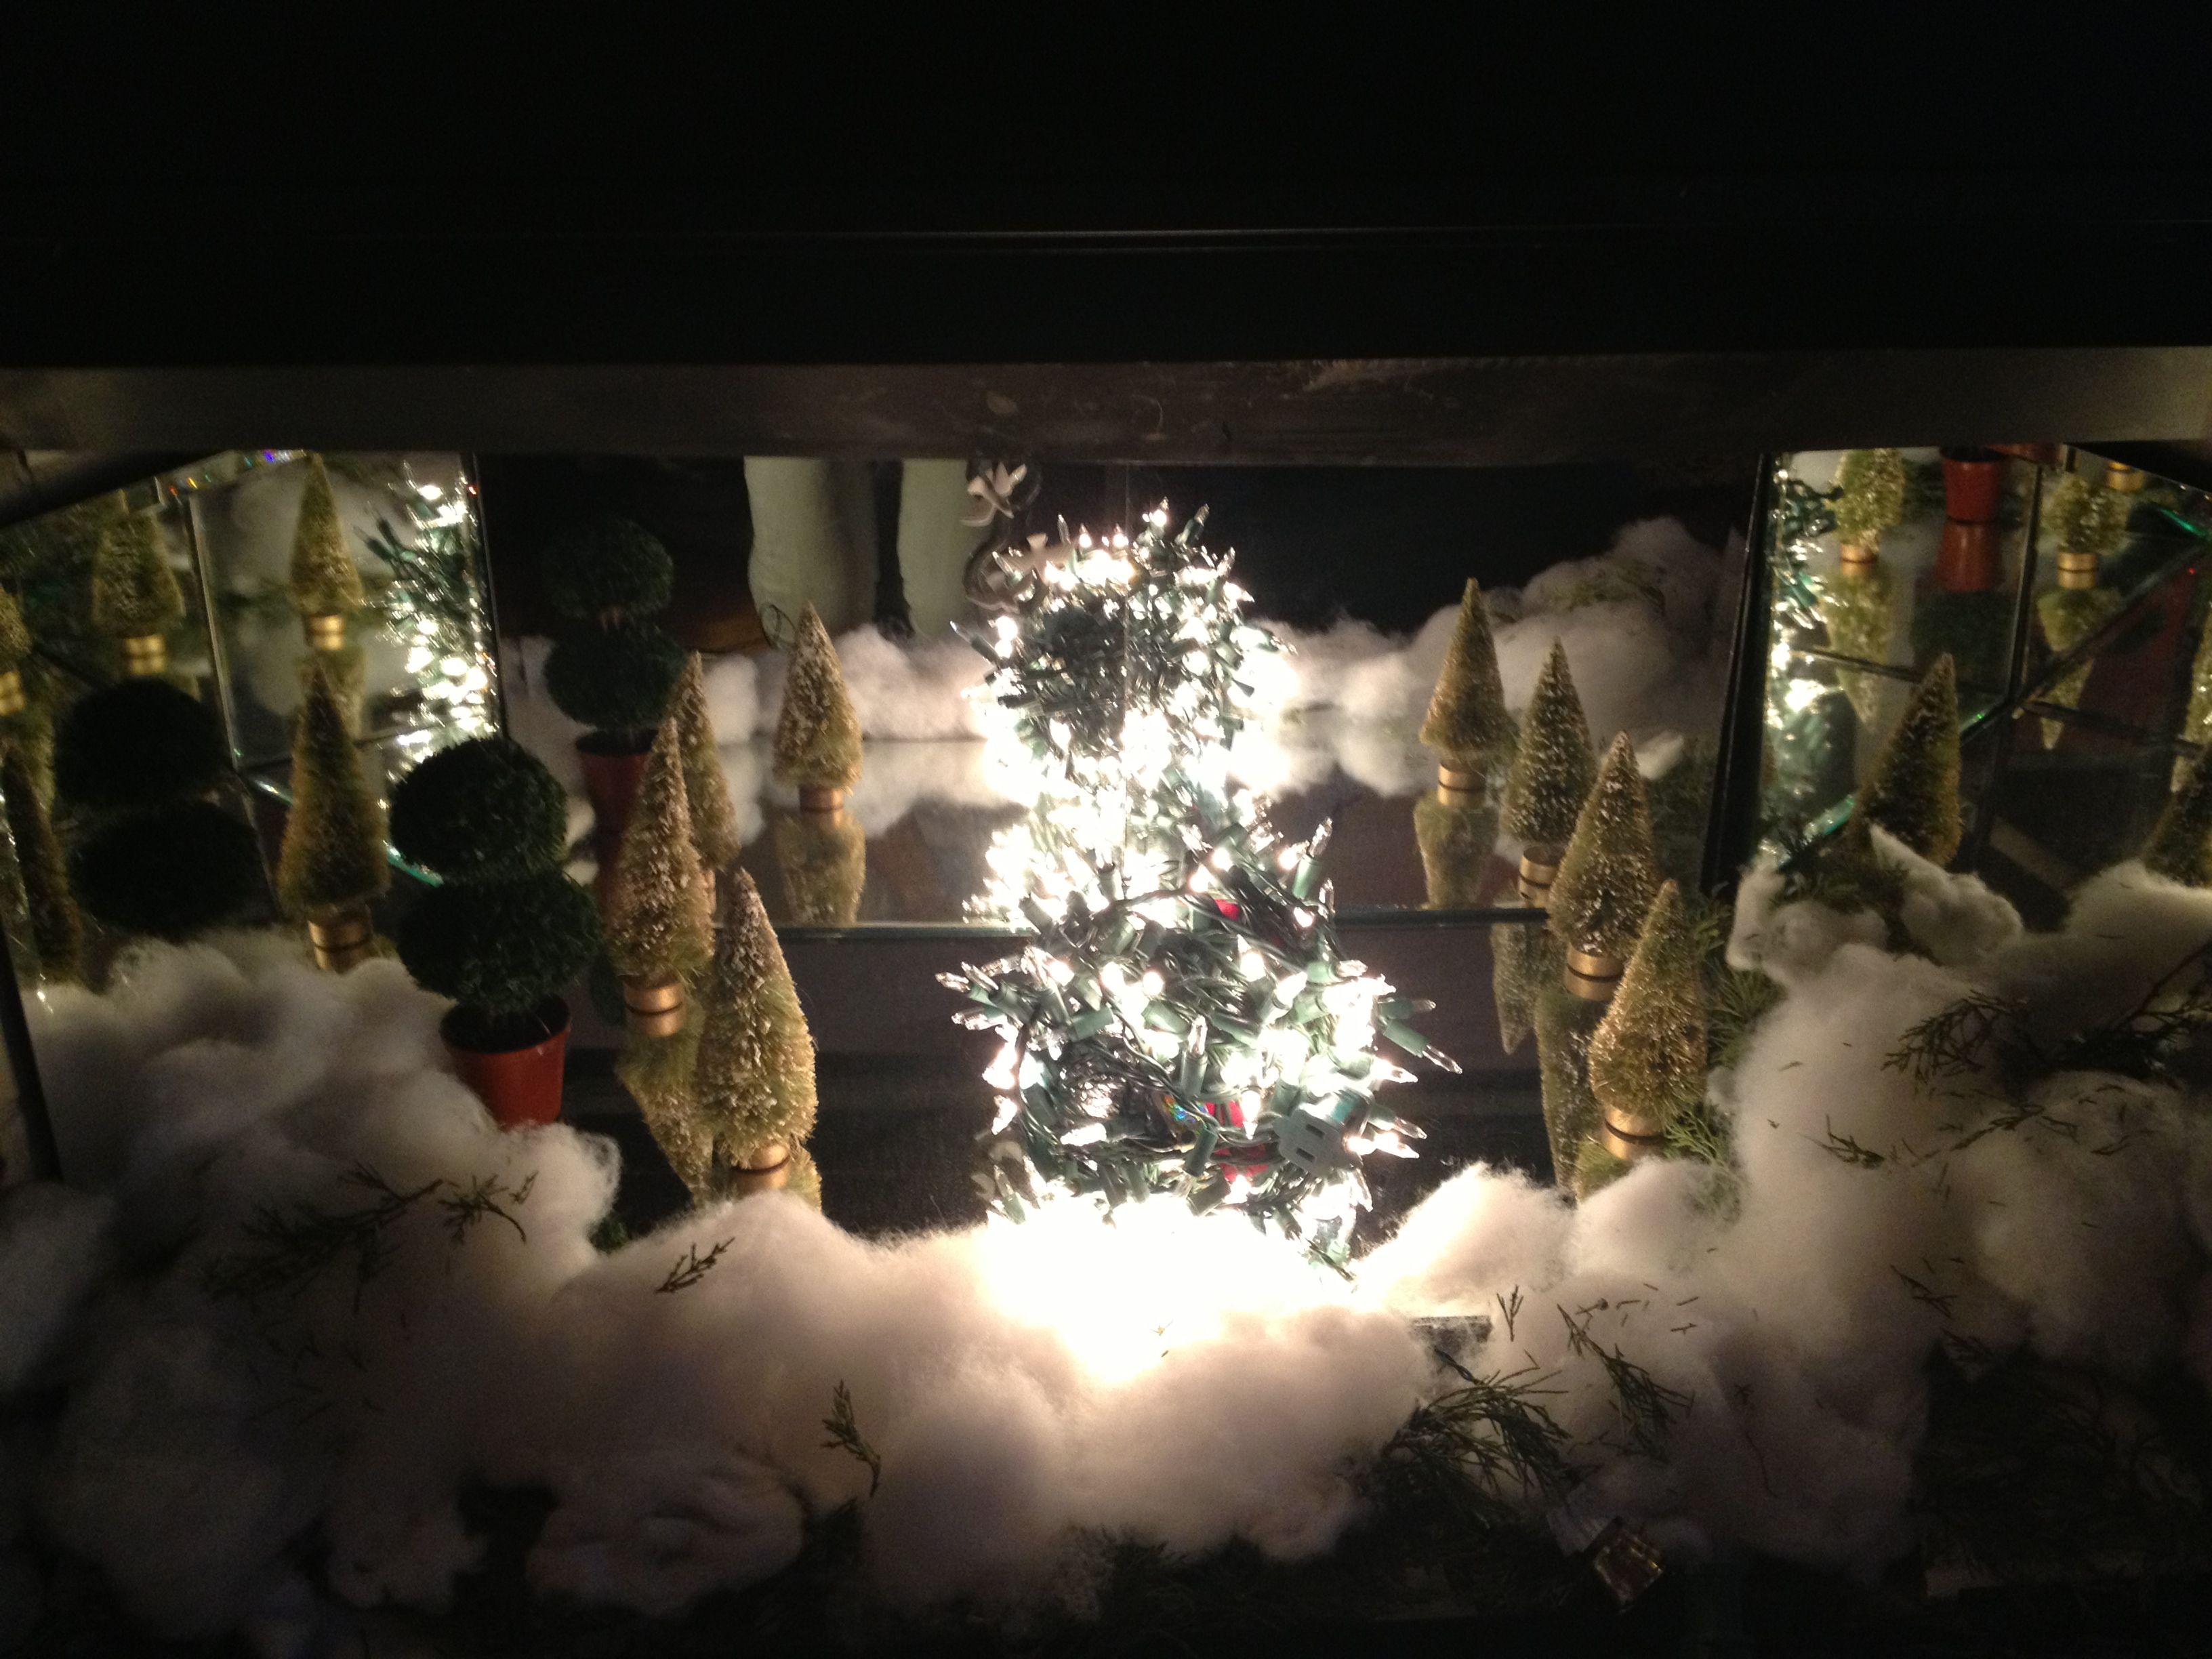 30+ Fake snow for inside ornaments ideas